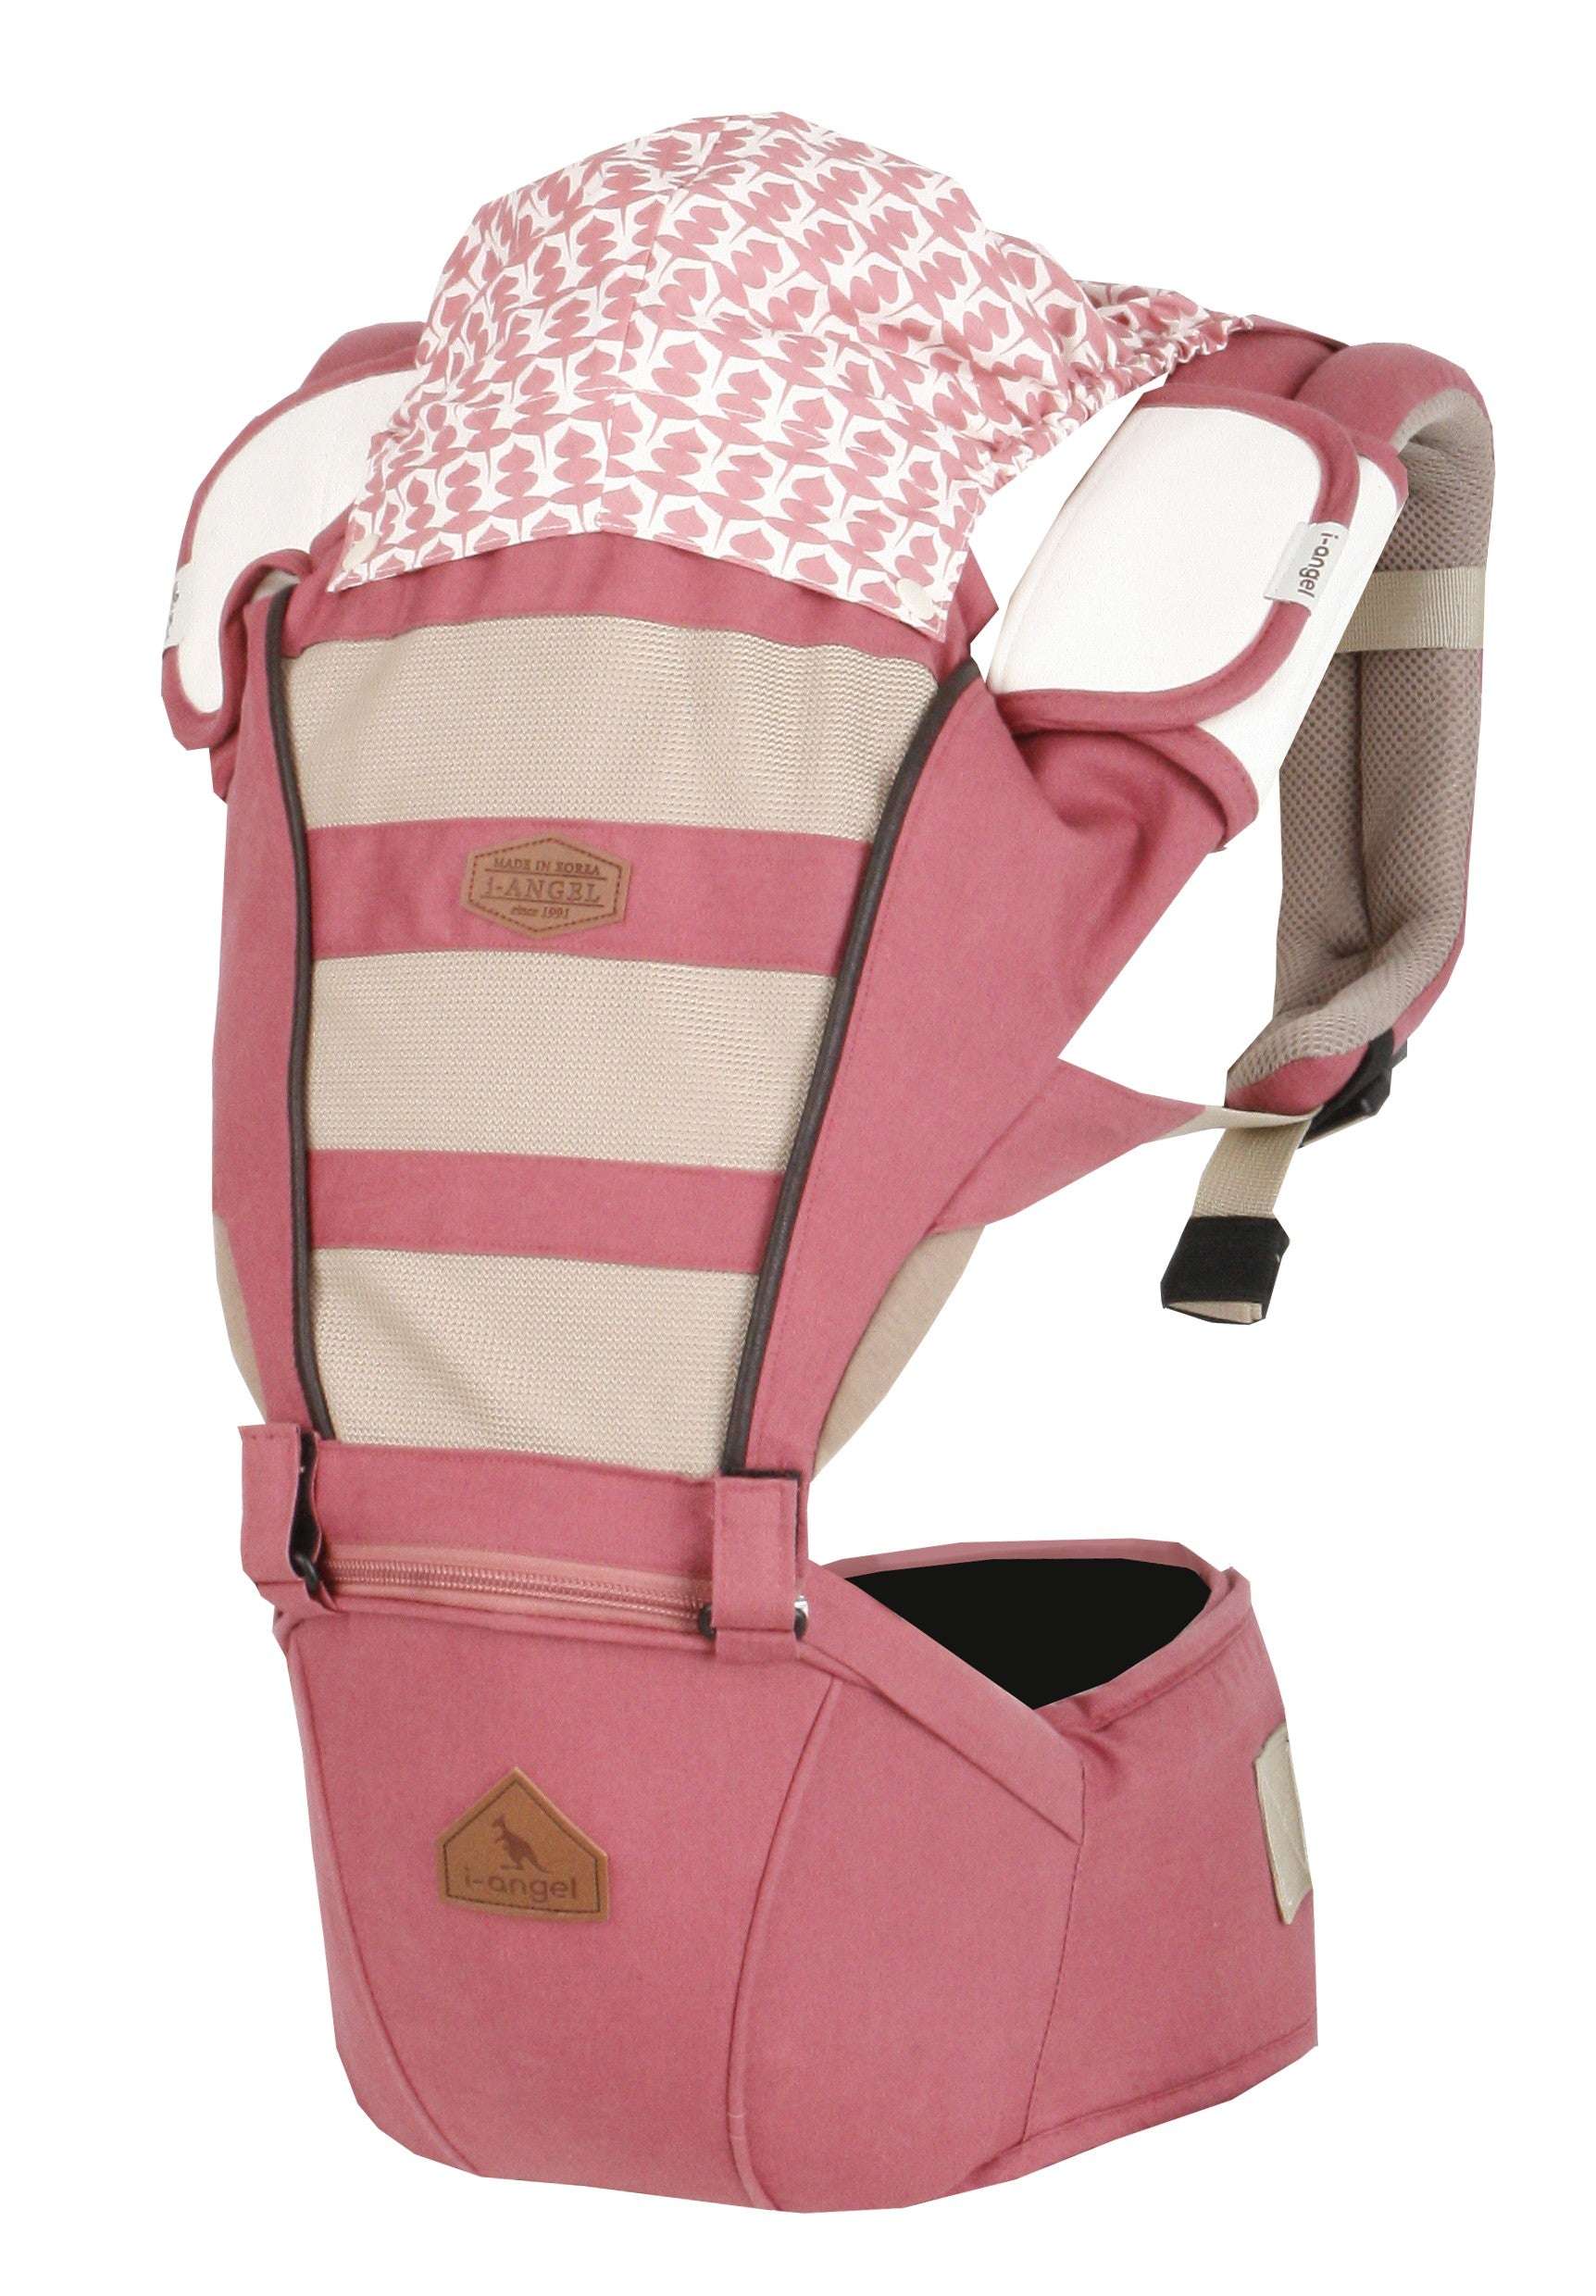 I-ANGEL HIPSEAT CARRIER - Mesh - Mighty Baby PH